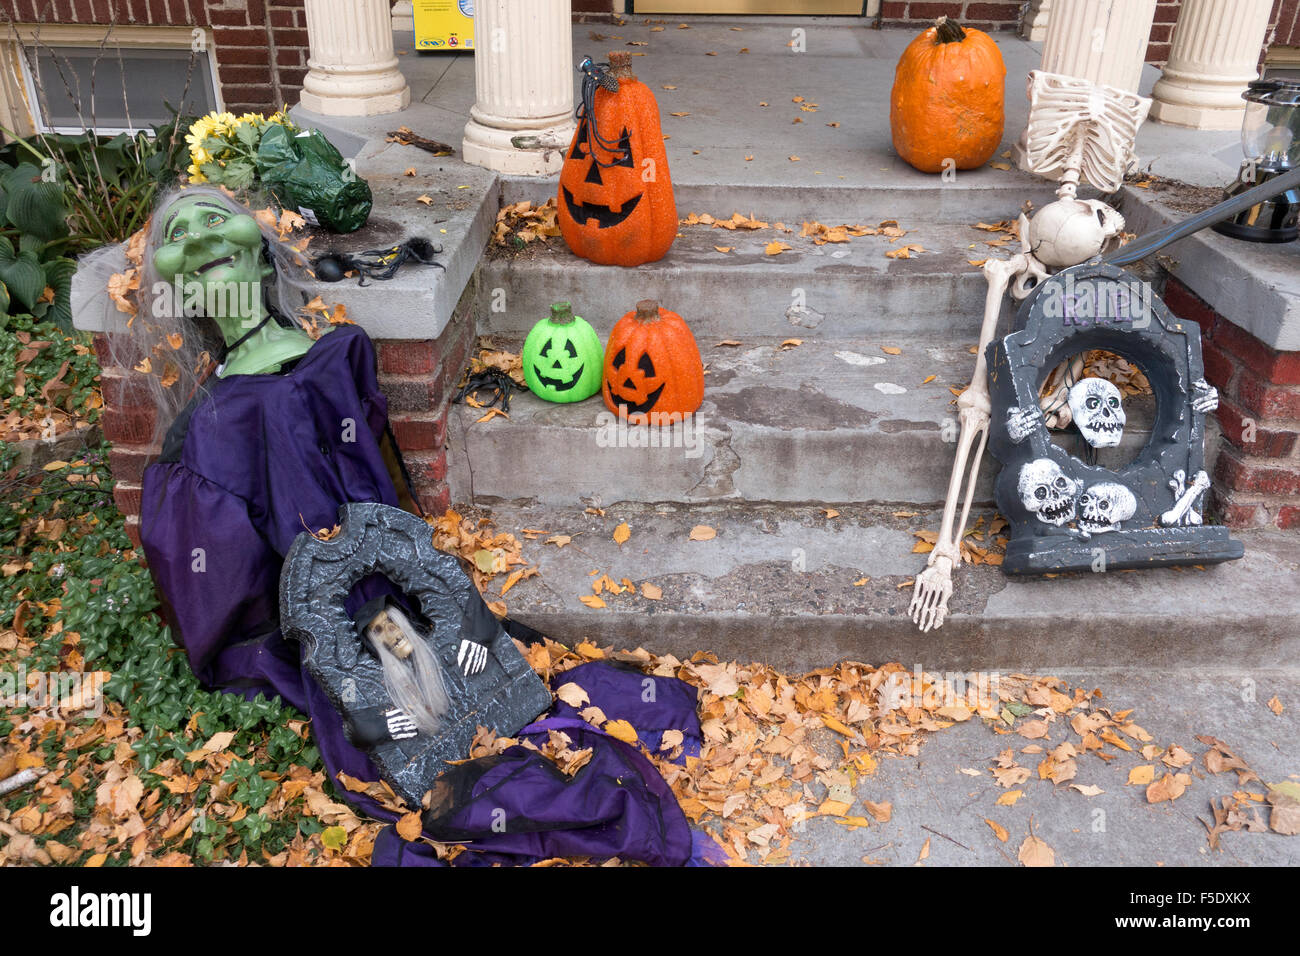 Halloween display of jack-o'-lanterns, skeletons and mummies on front steps of residential home. St Paul Minnesota - Stock Image